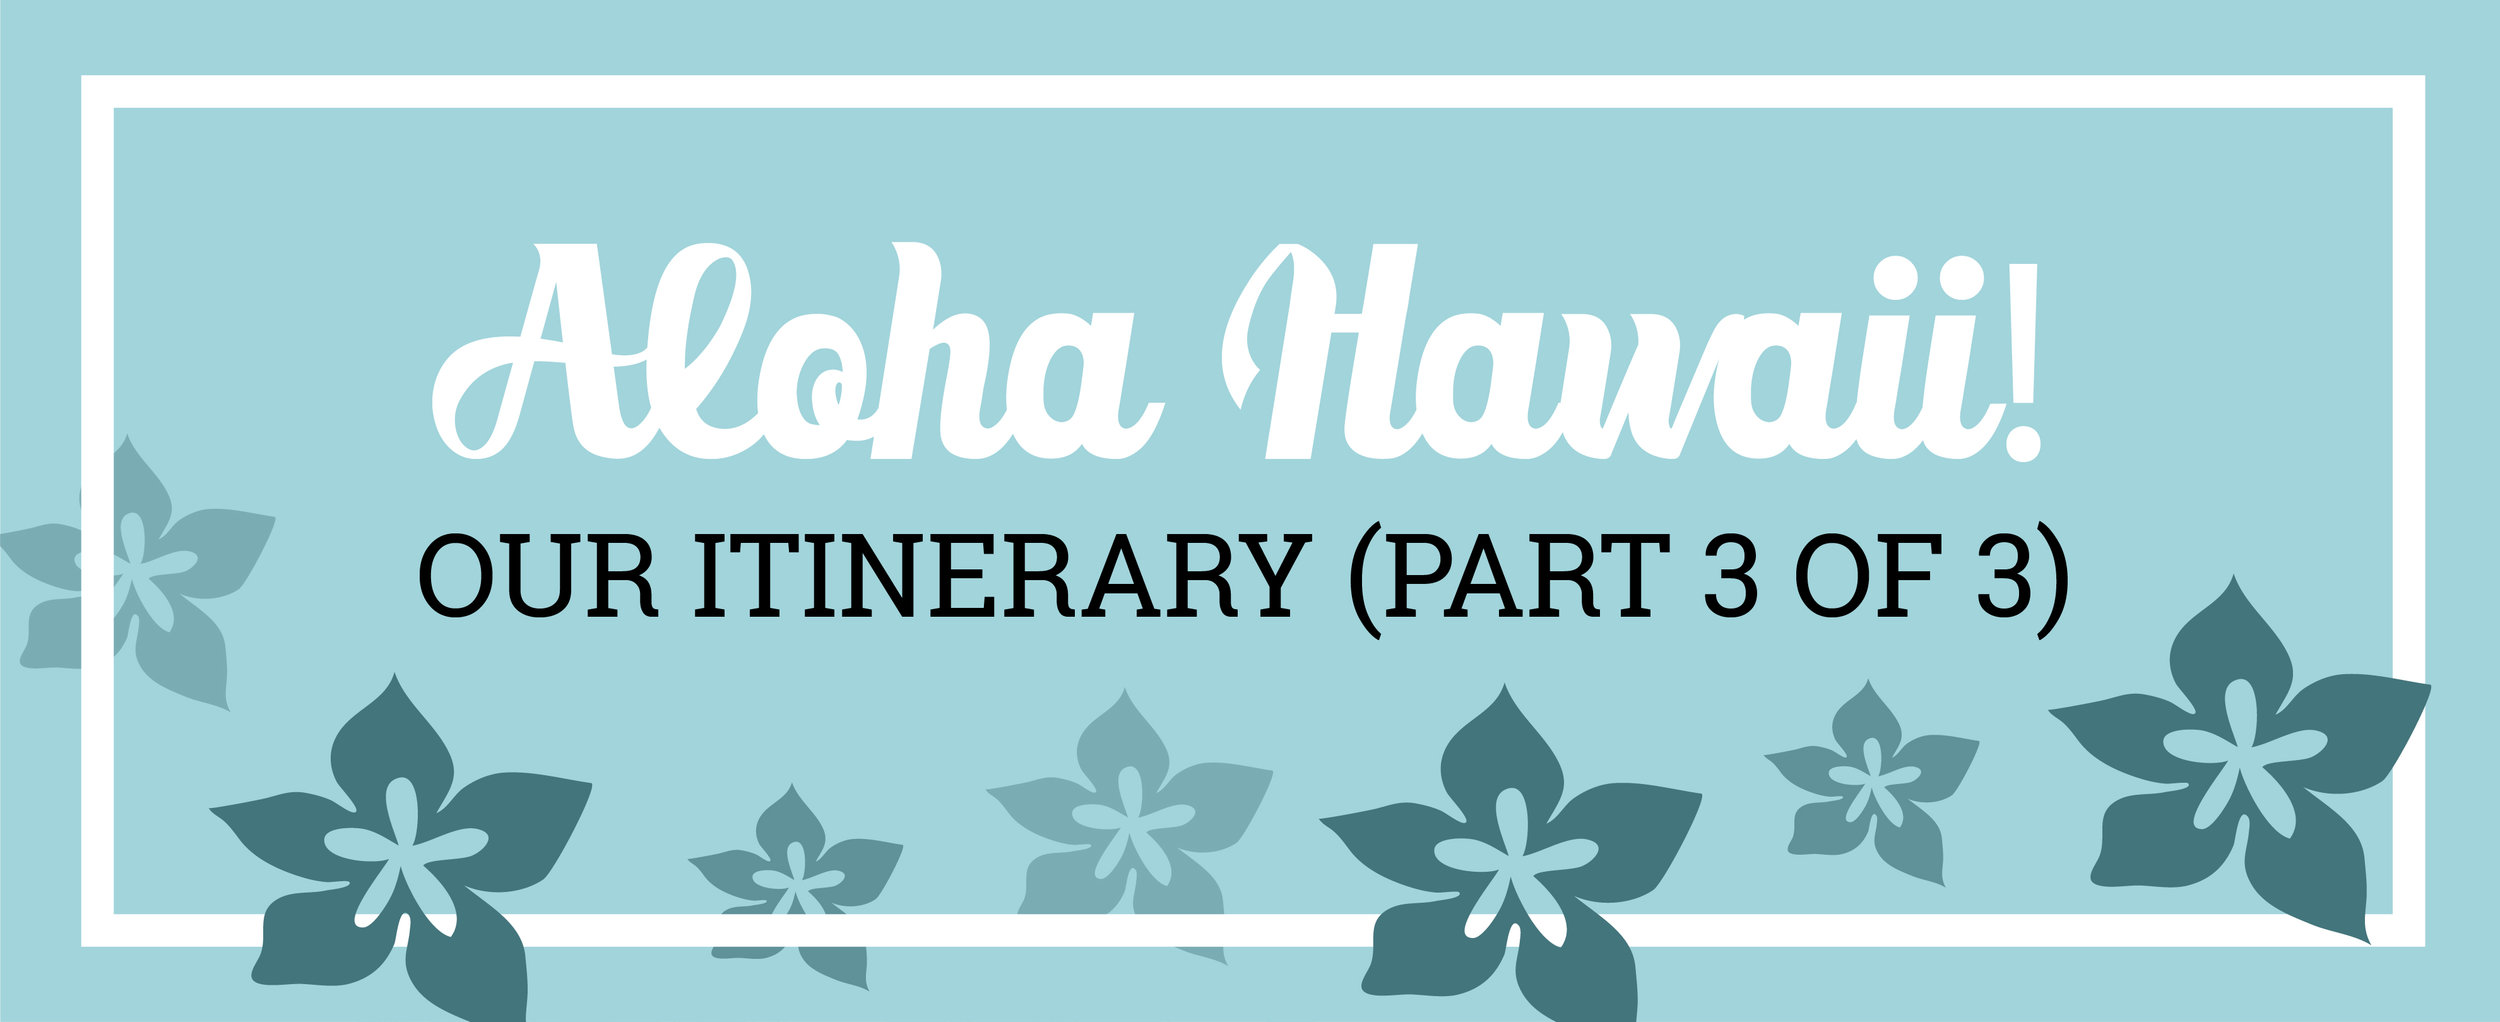 blog_hawaii_header-02.jpg